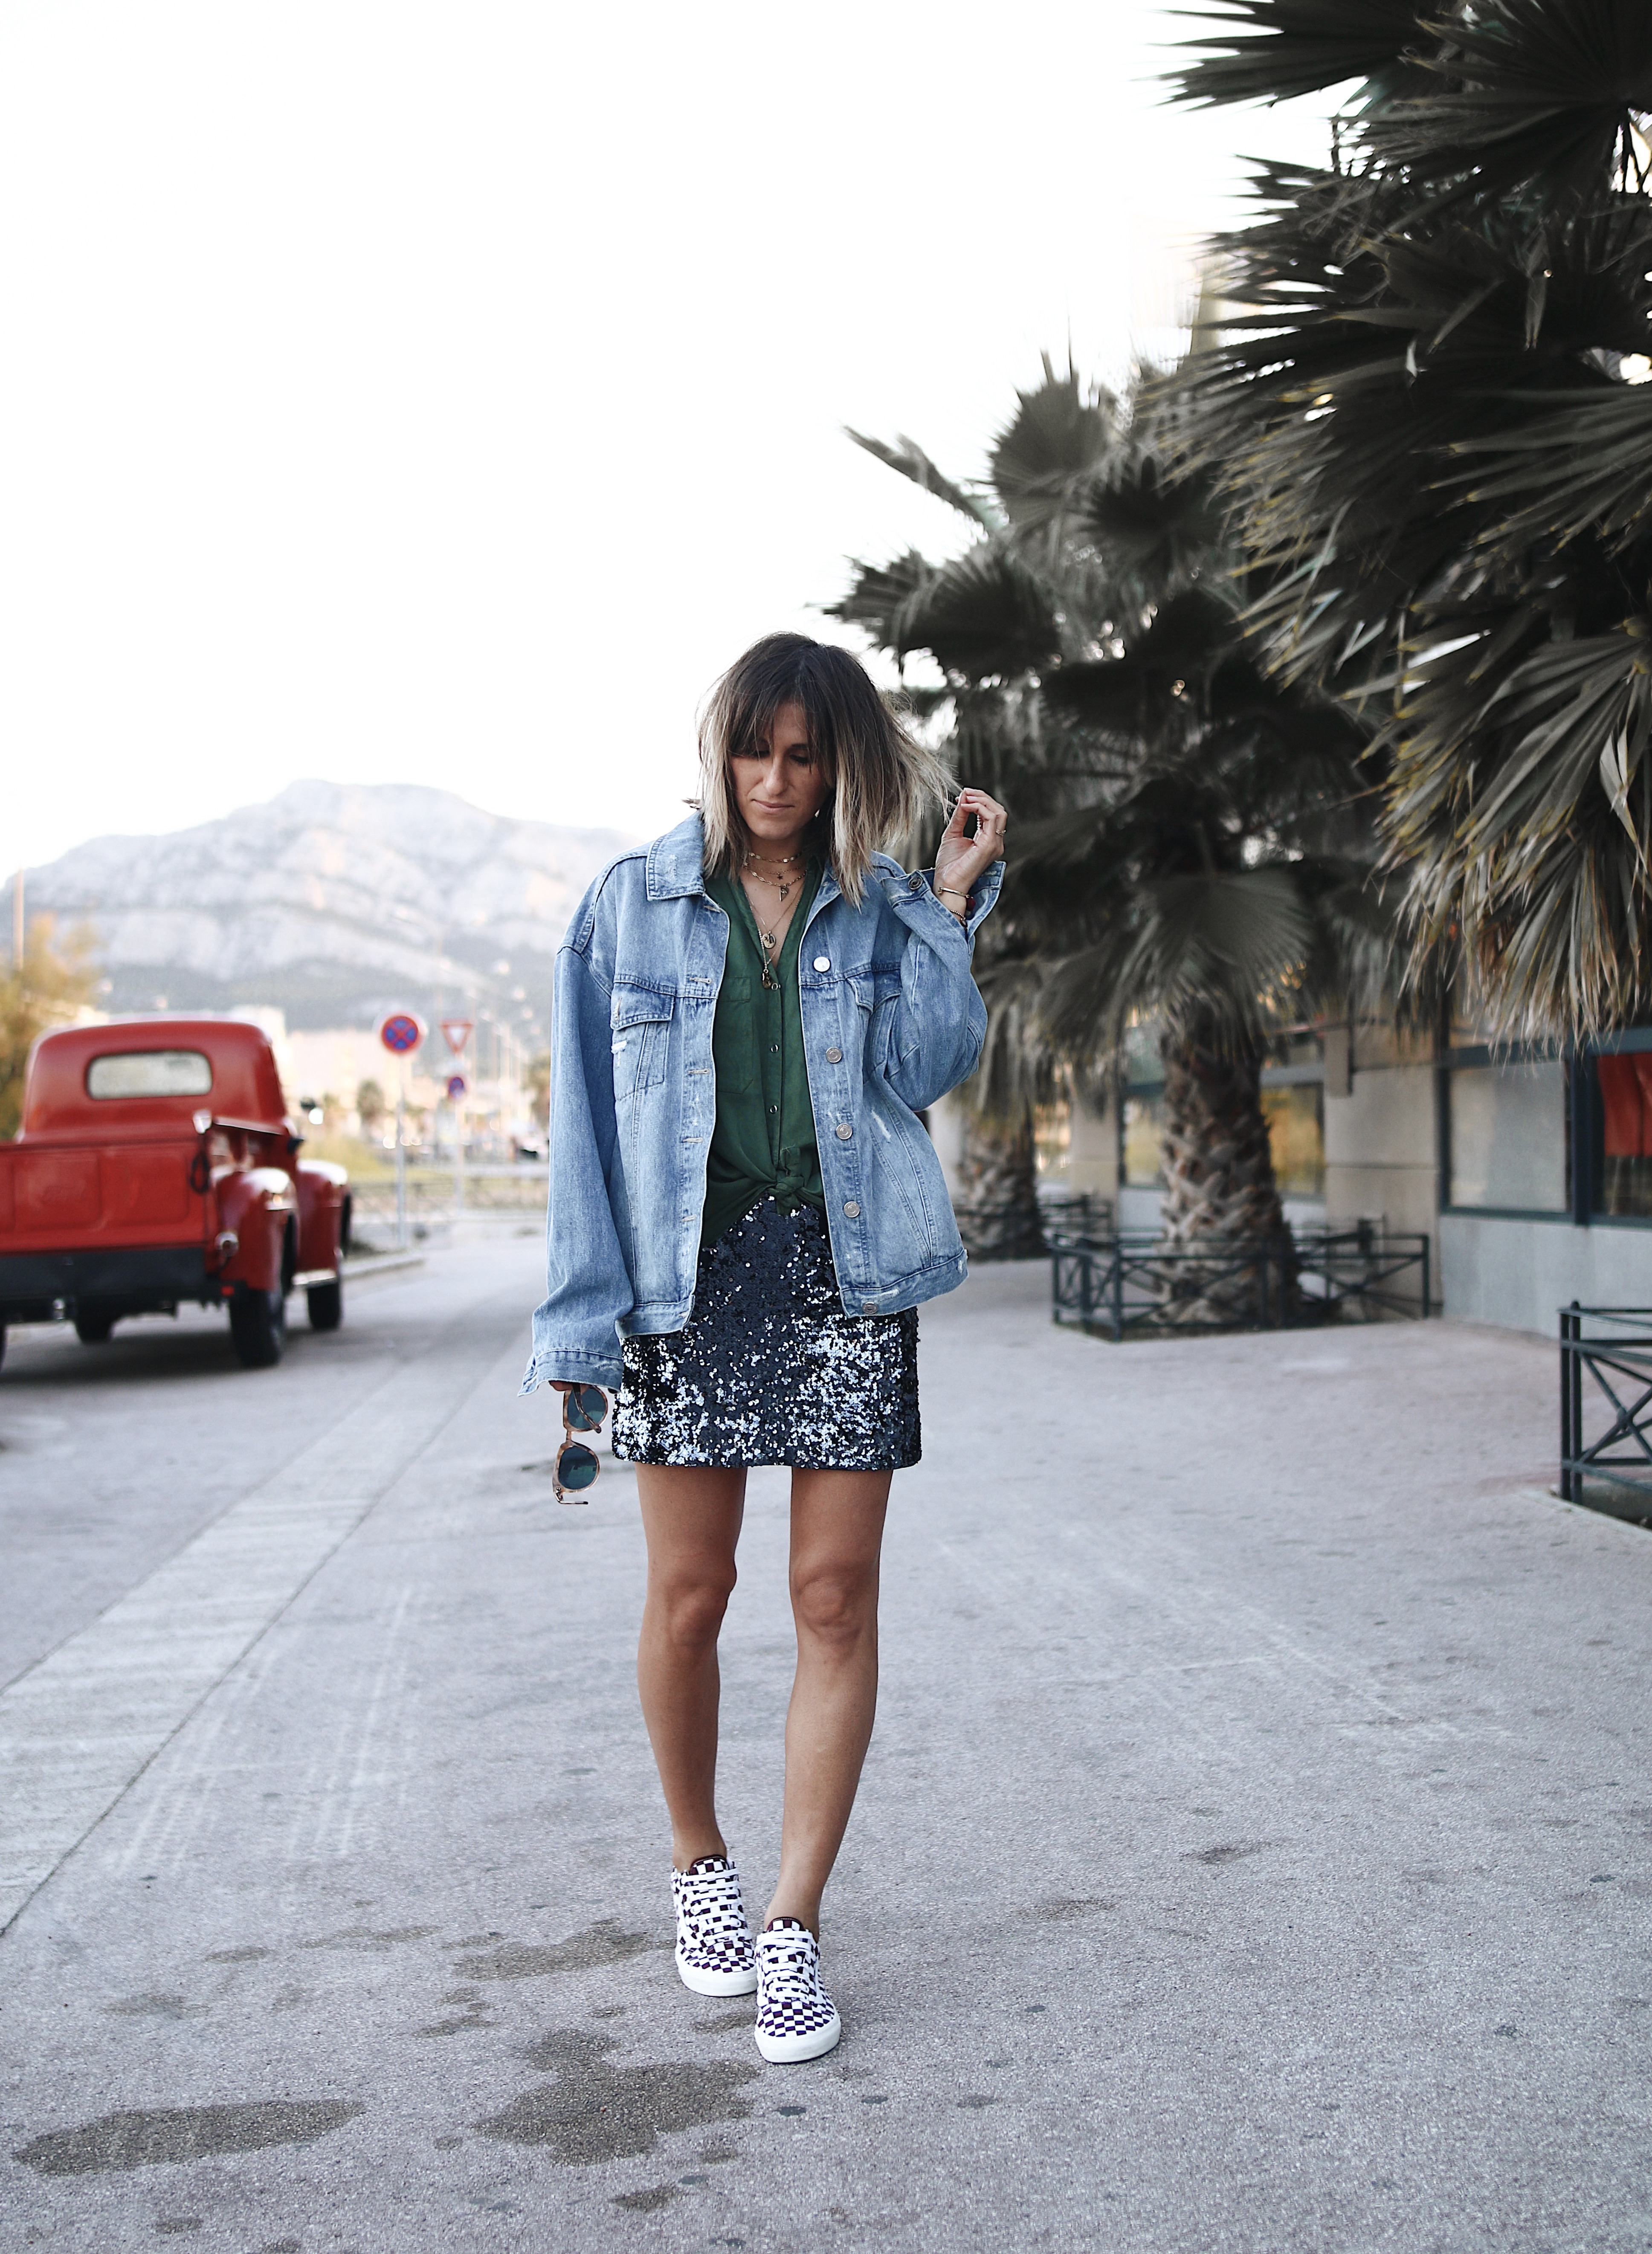 HOW TO STYLE SEQUIN SKIRT WITH DENIM JACKET AND VANS SNEAKERS